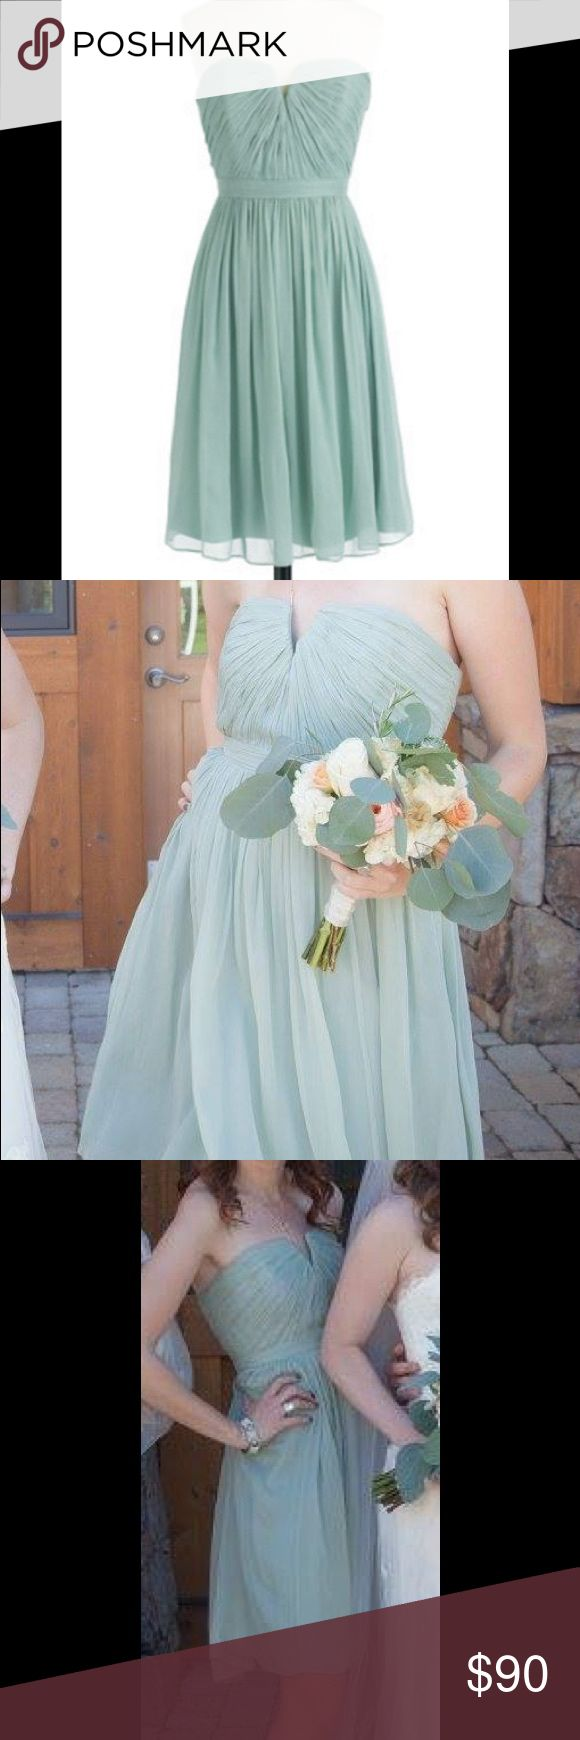 J Crew Nadia bridesmaid dress in dusty shale J Crew bridesmaid dress in dusty shale. Strapless style dress. Made with silk chiffon. A line silhouette. Interior has an attached corset for added support. Worn once for a wedding. J. Crew Dresses